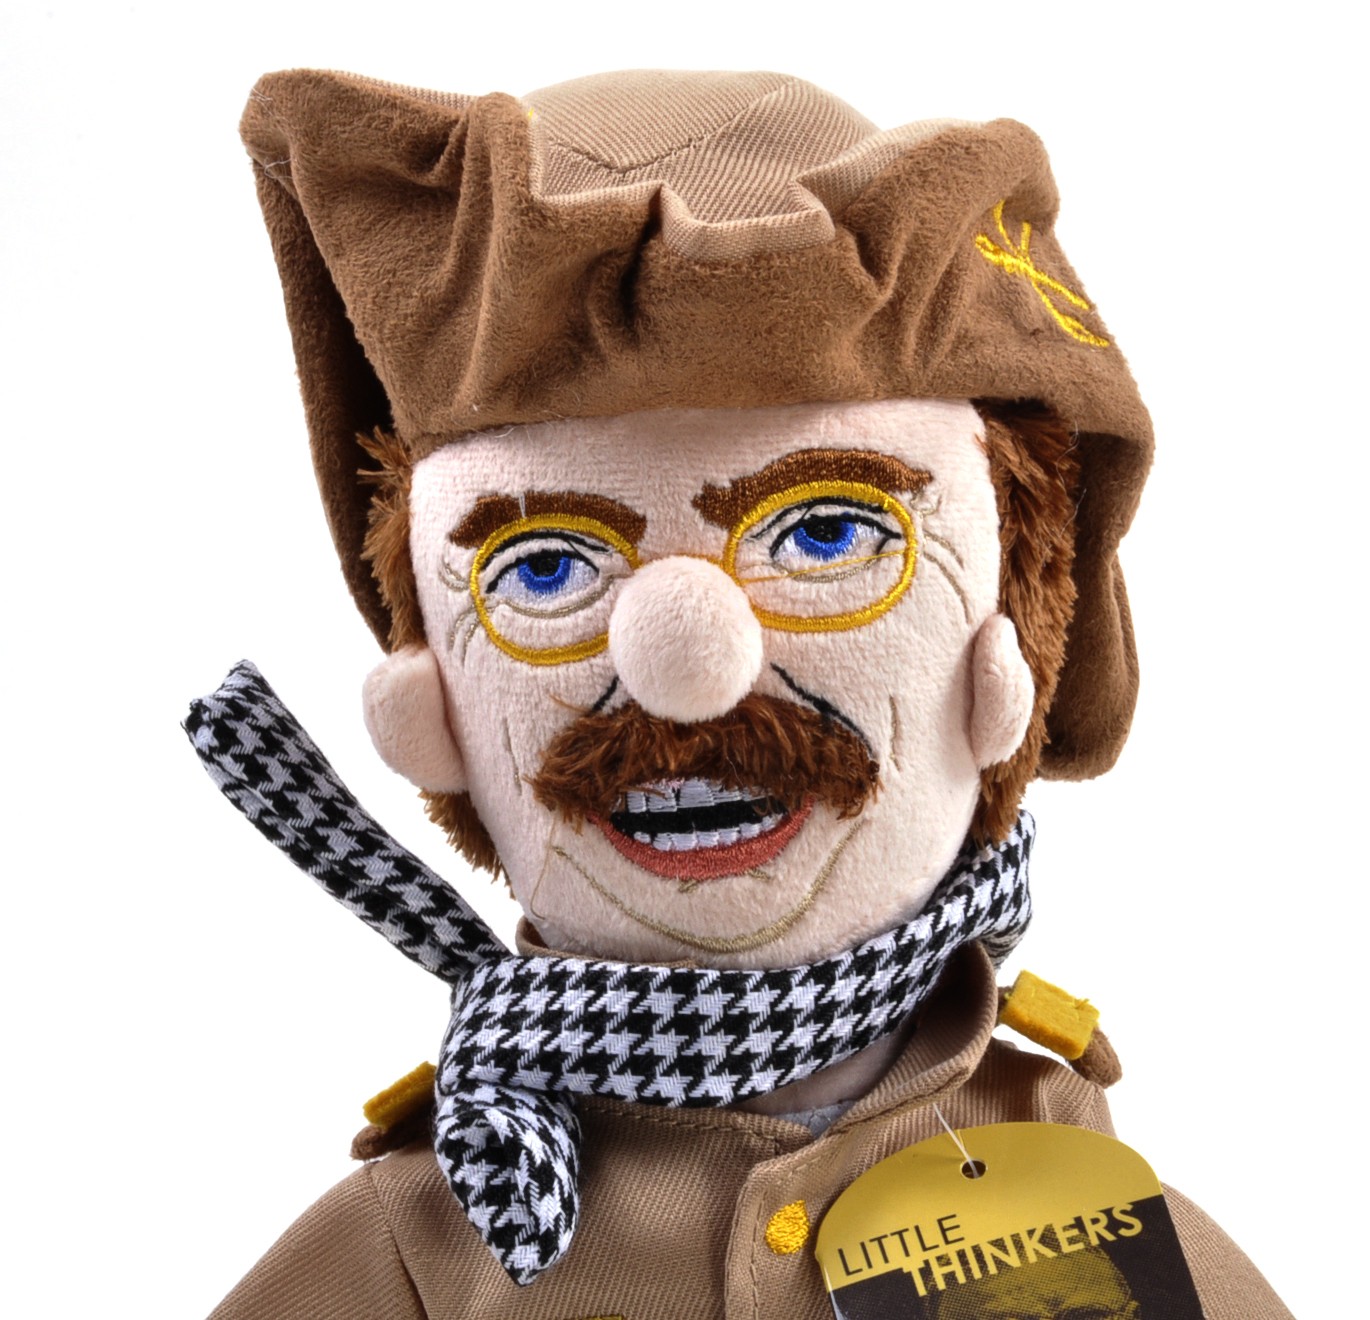 ... sentinel theodore roosevelt soft toy little thinkers doll · teddy bear costume ...  sc 1 st  Best Kids Costumes & Teddy Roosevelt Costume For Kids - Best Kids Costumes